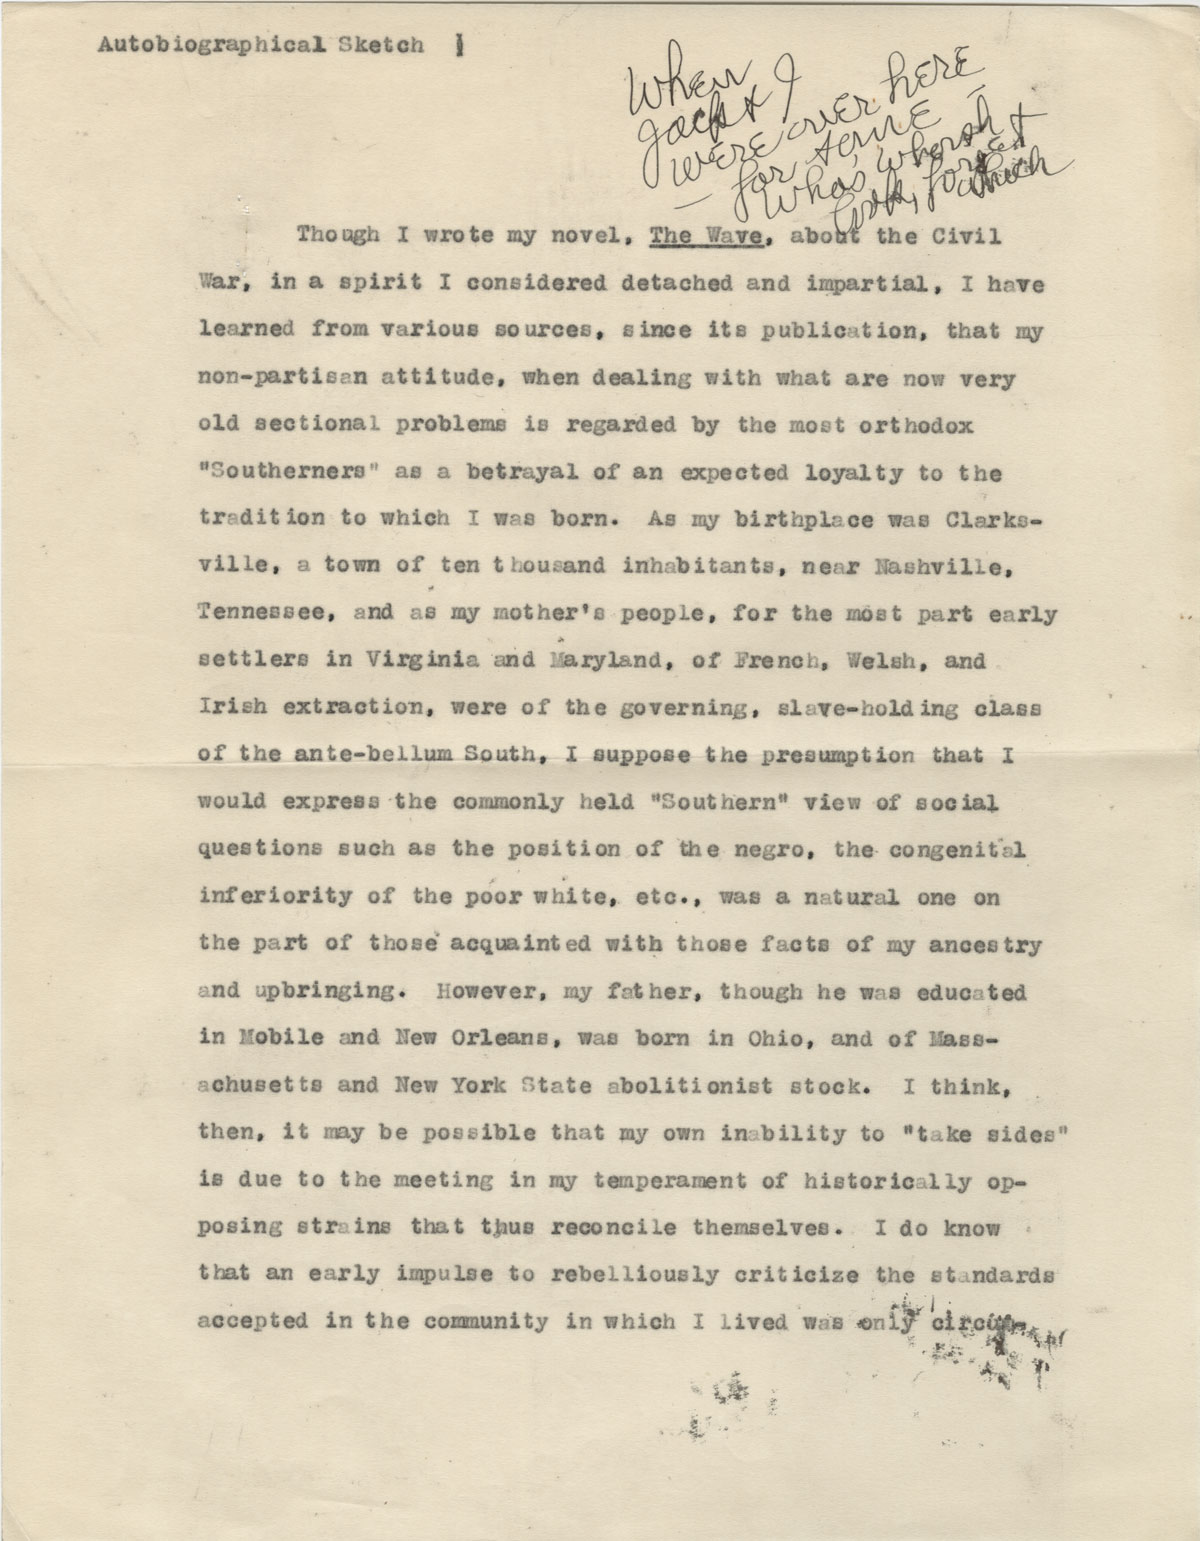 The first page of the manuscript of Scott's Autobiographical Sketch, ca. 1930s. Image used with the permission of the Scott family.